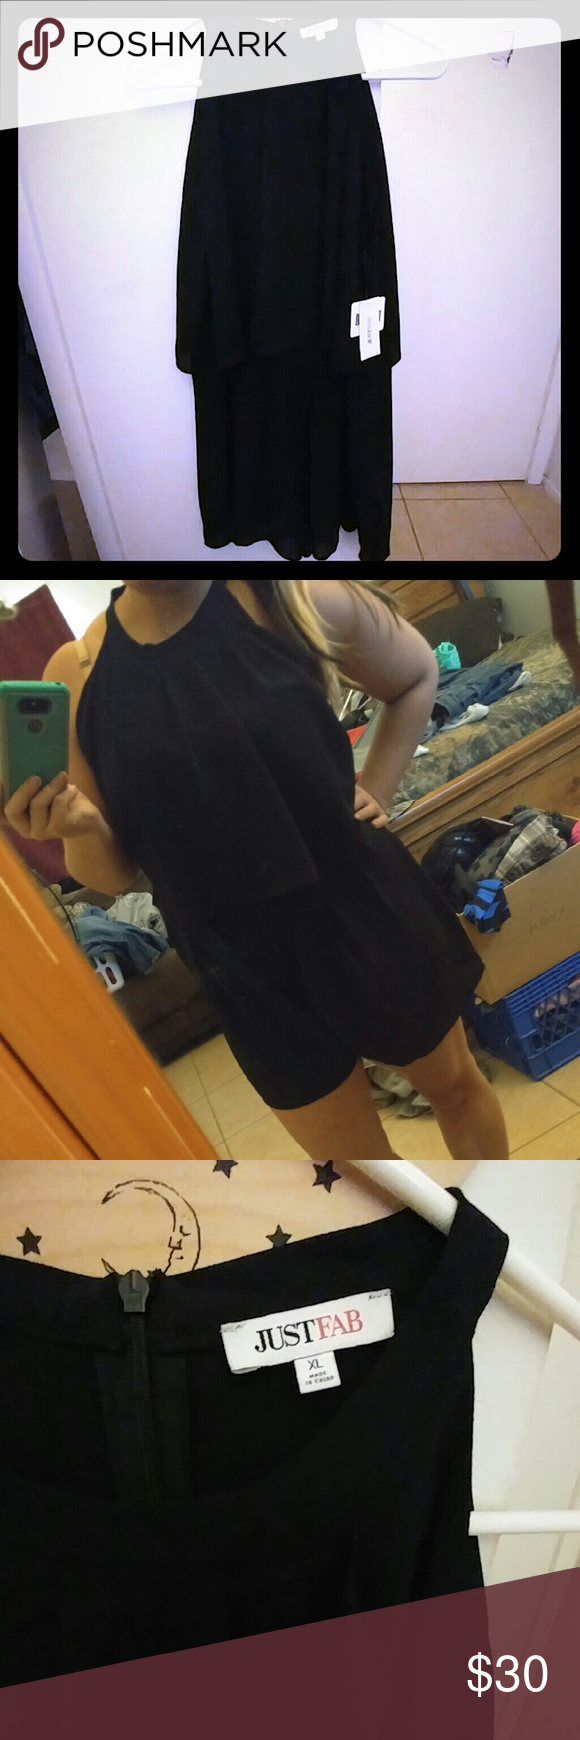 High neck black romper Bought from Justfab. Doesnt flatter me so only tried on and hung in closet. I ordered one size up from my normal size for it. Nwt JustFab Dresses